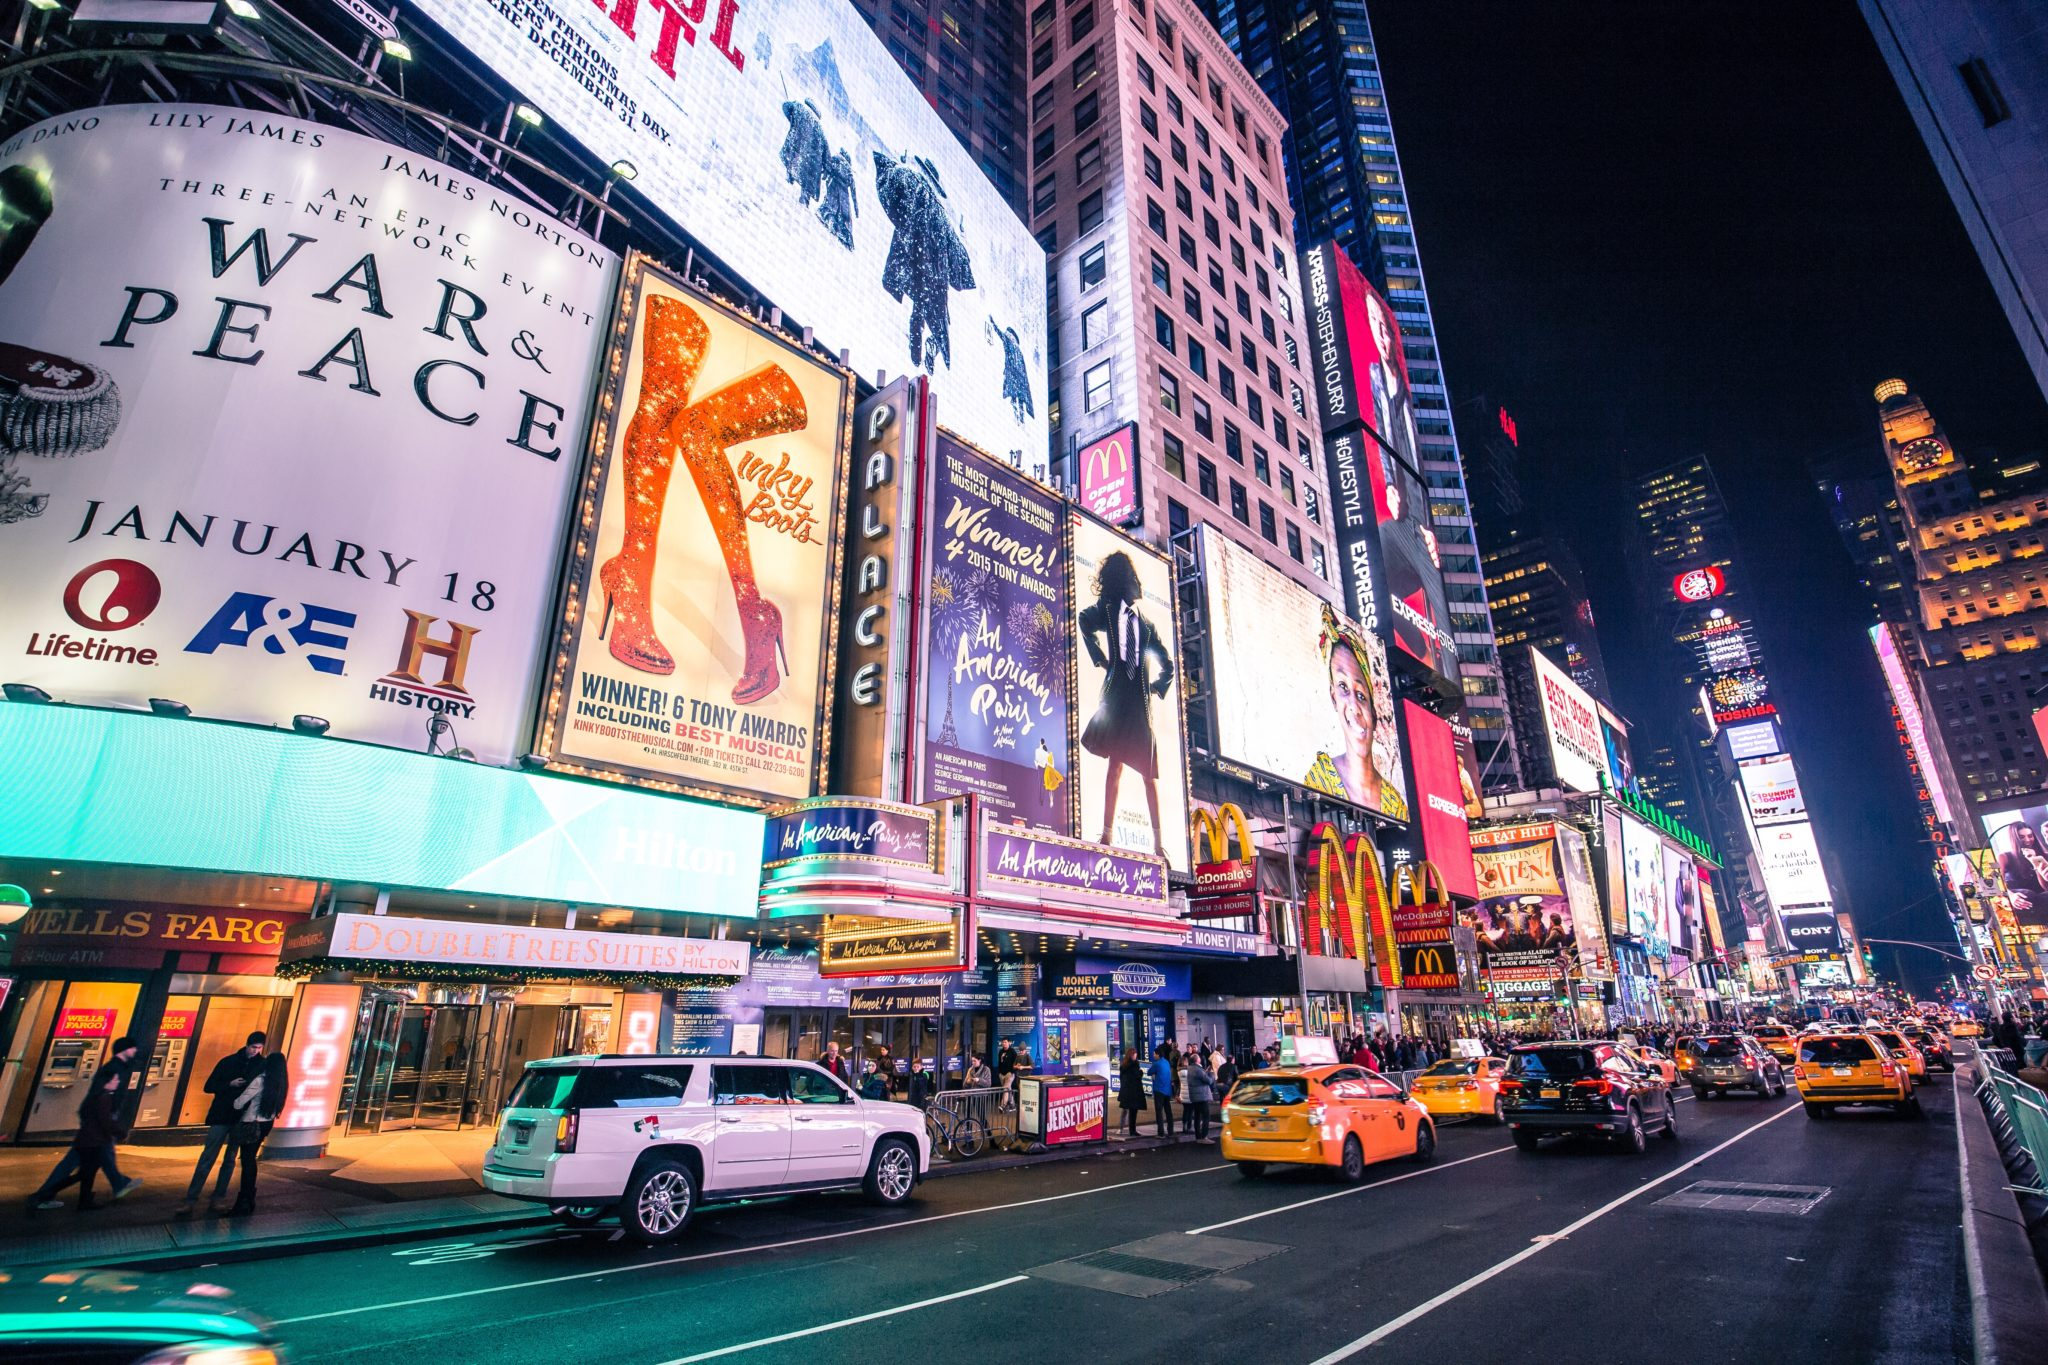 Neon billboards in New York's Times Square